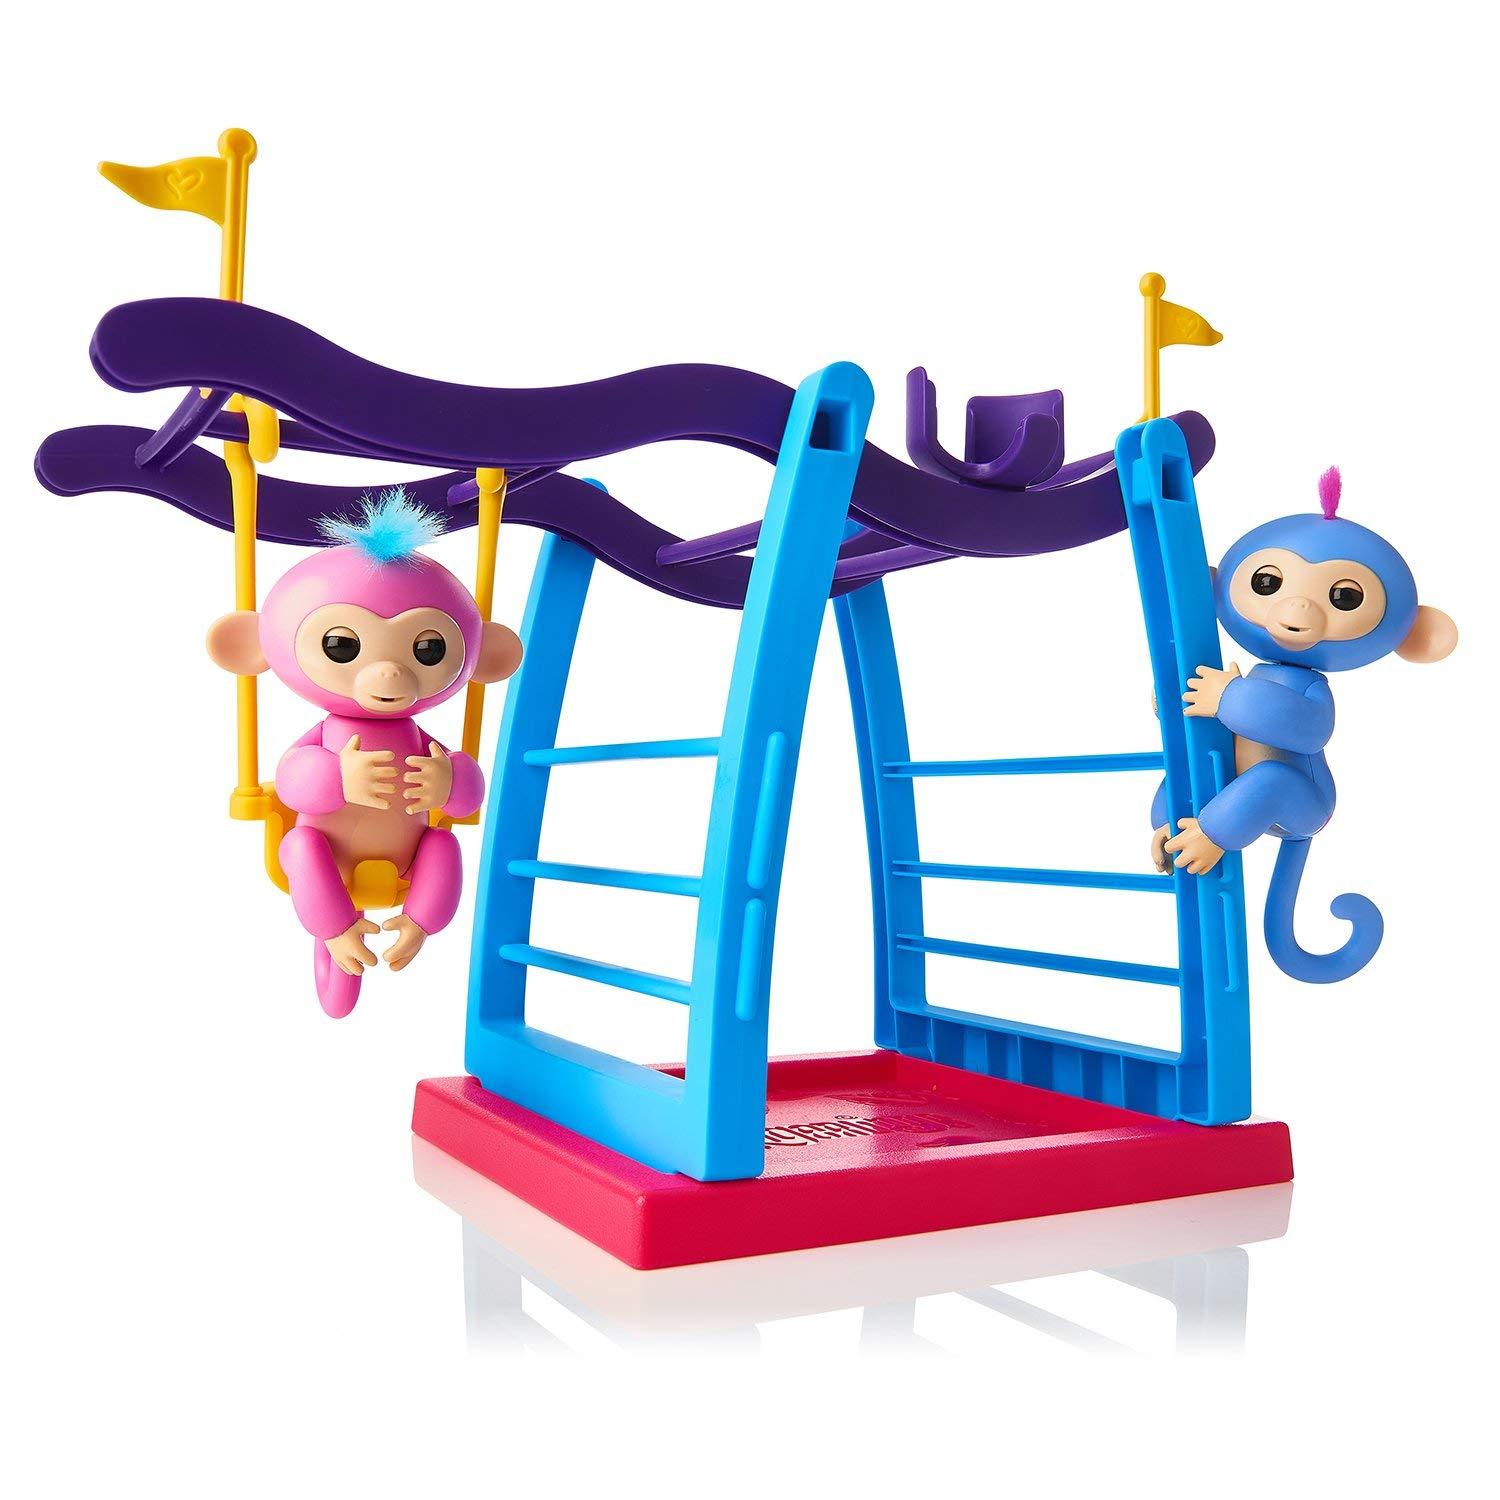 Kid upside down on monkey bars clipart jpg royalty free library 2-Pack Fingerling Baby Monkeys + Monkey Bar/Swing Playground ... jpg royalty free library